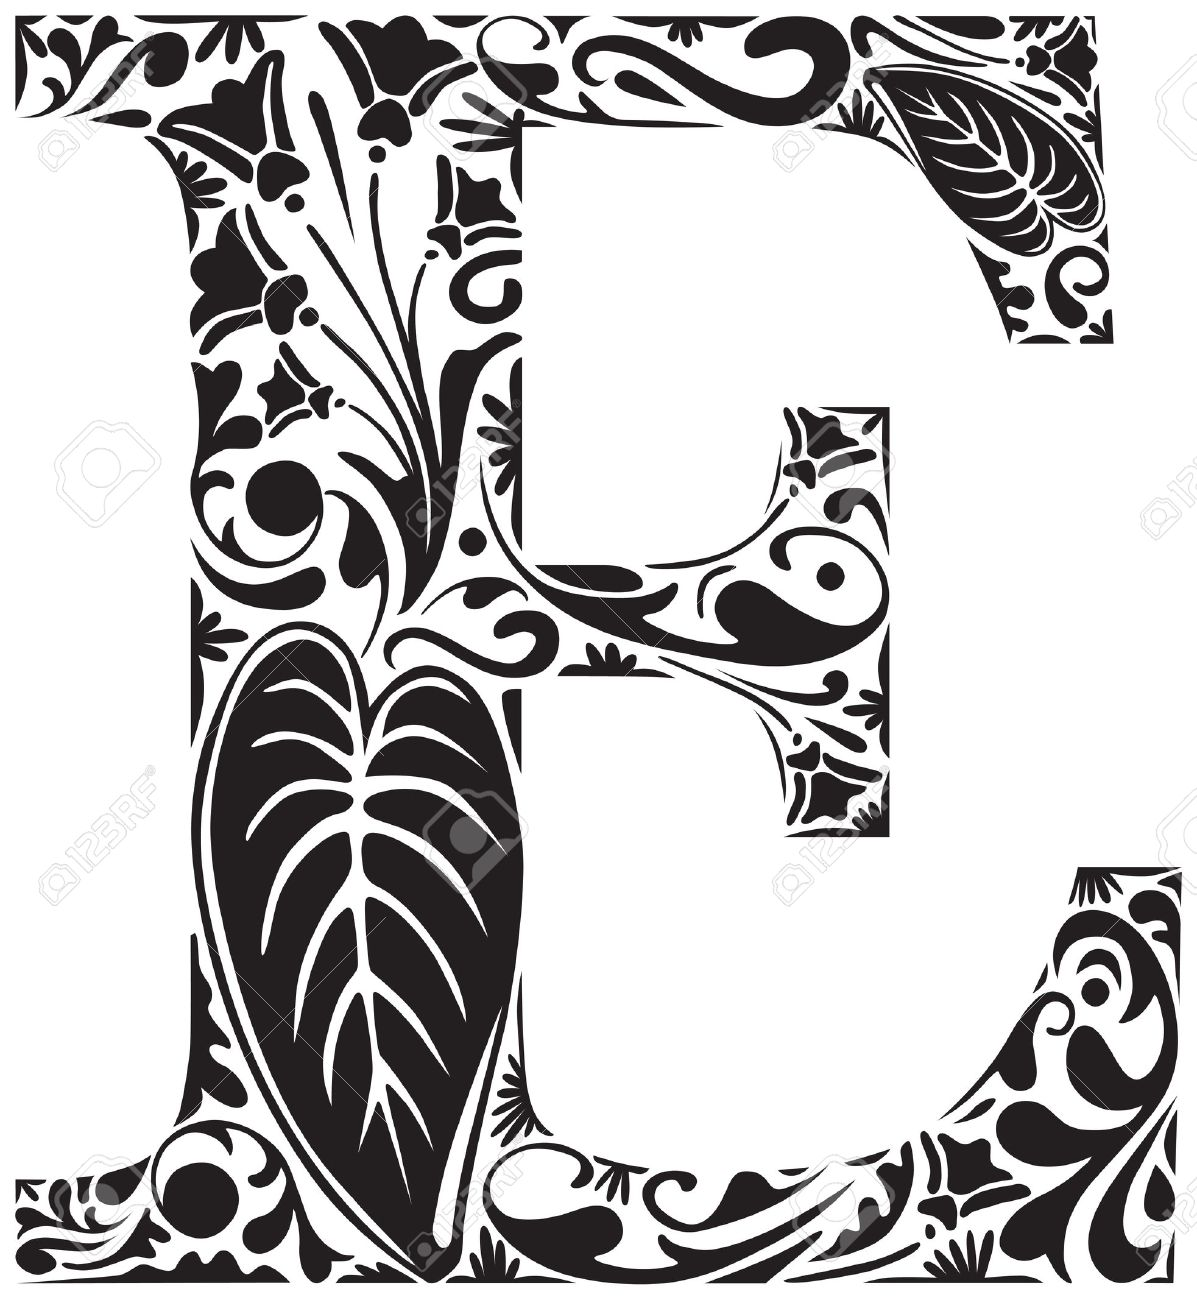 Floral Initial Capital Letter E Royalty Free Cliparts Vectors And